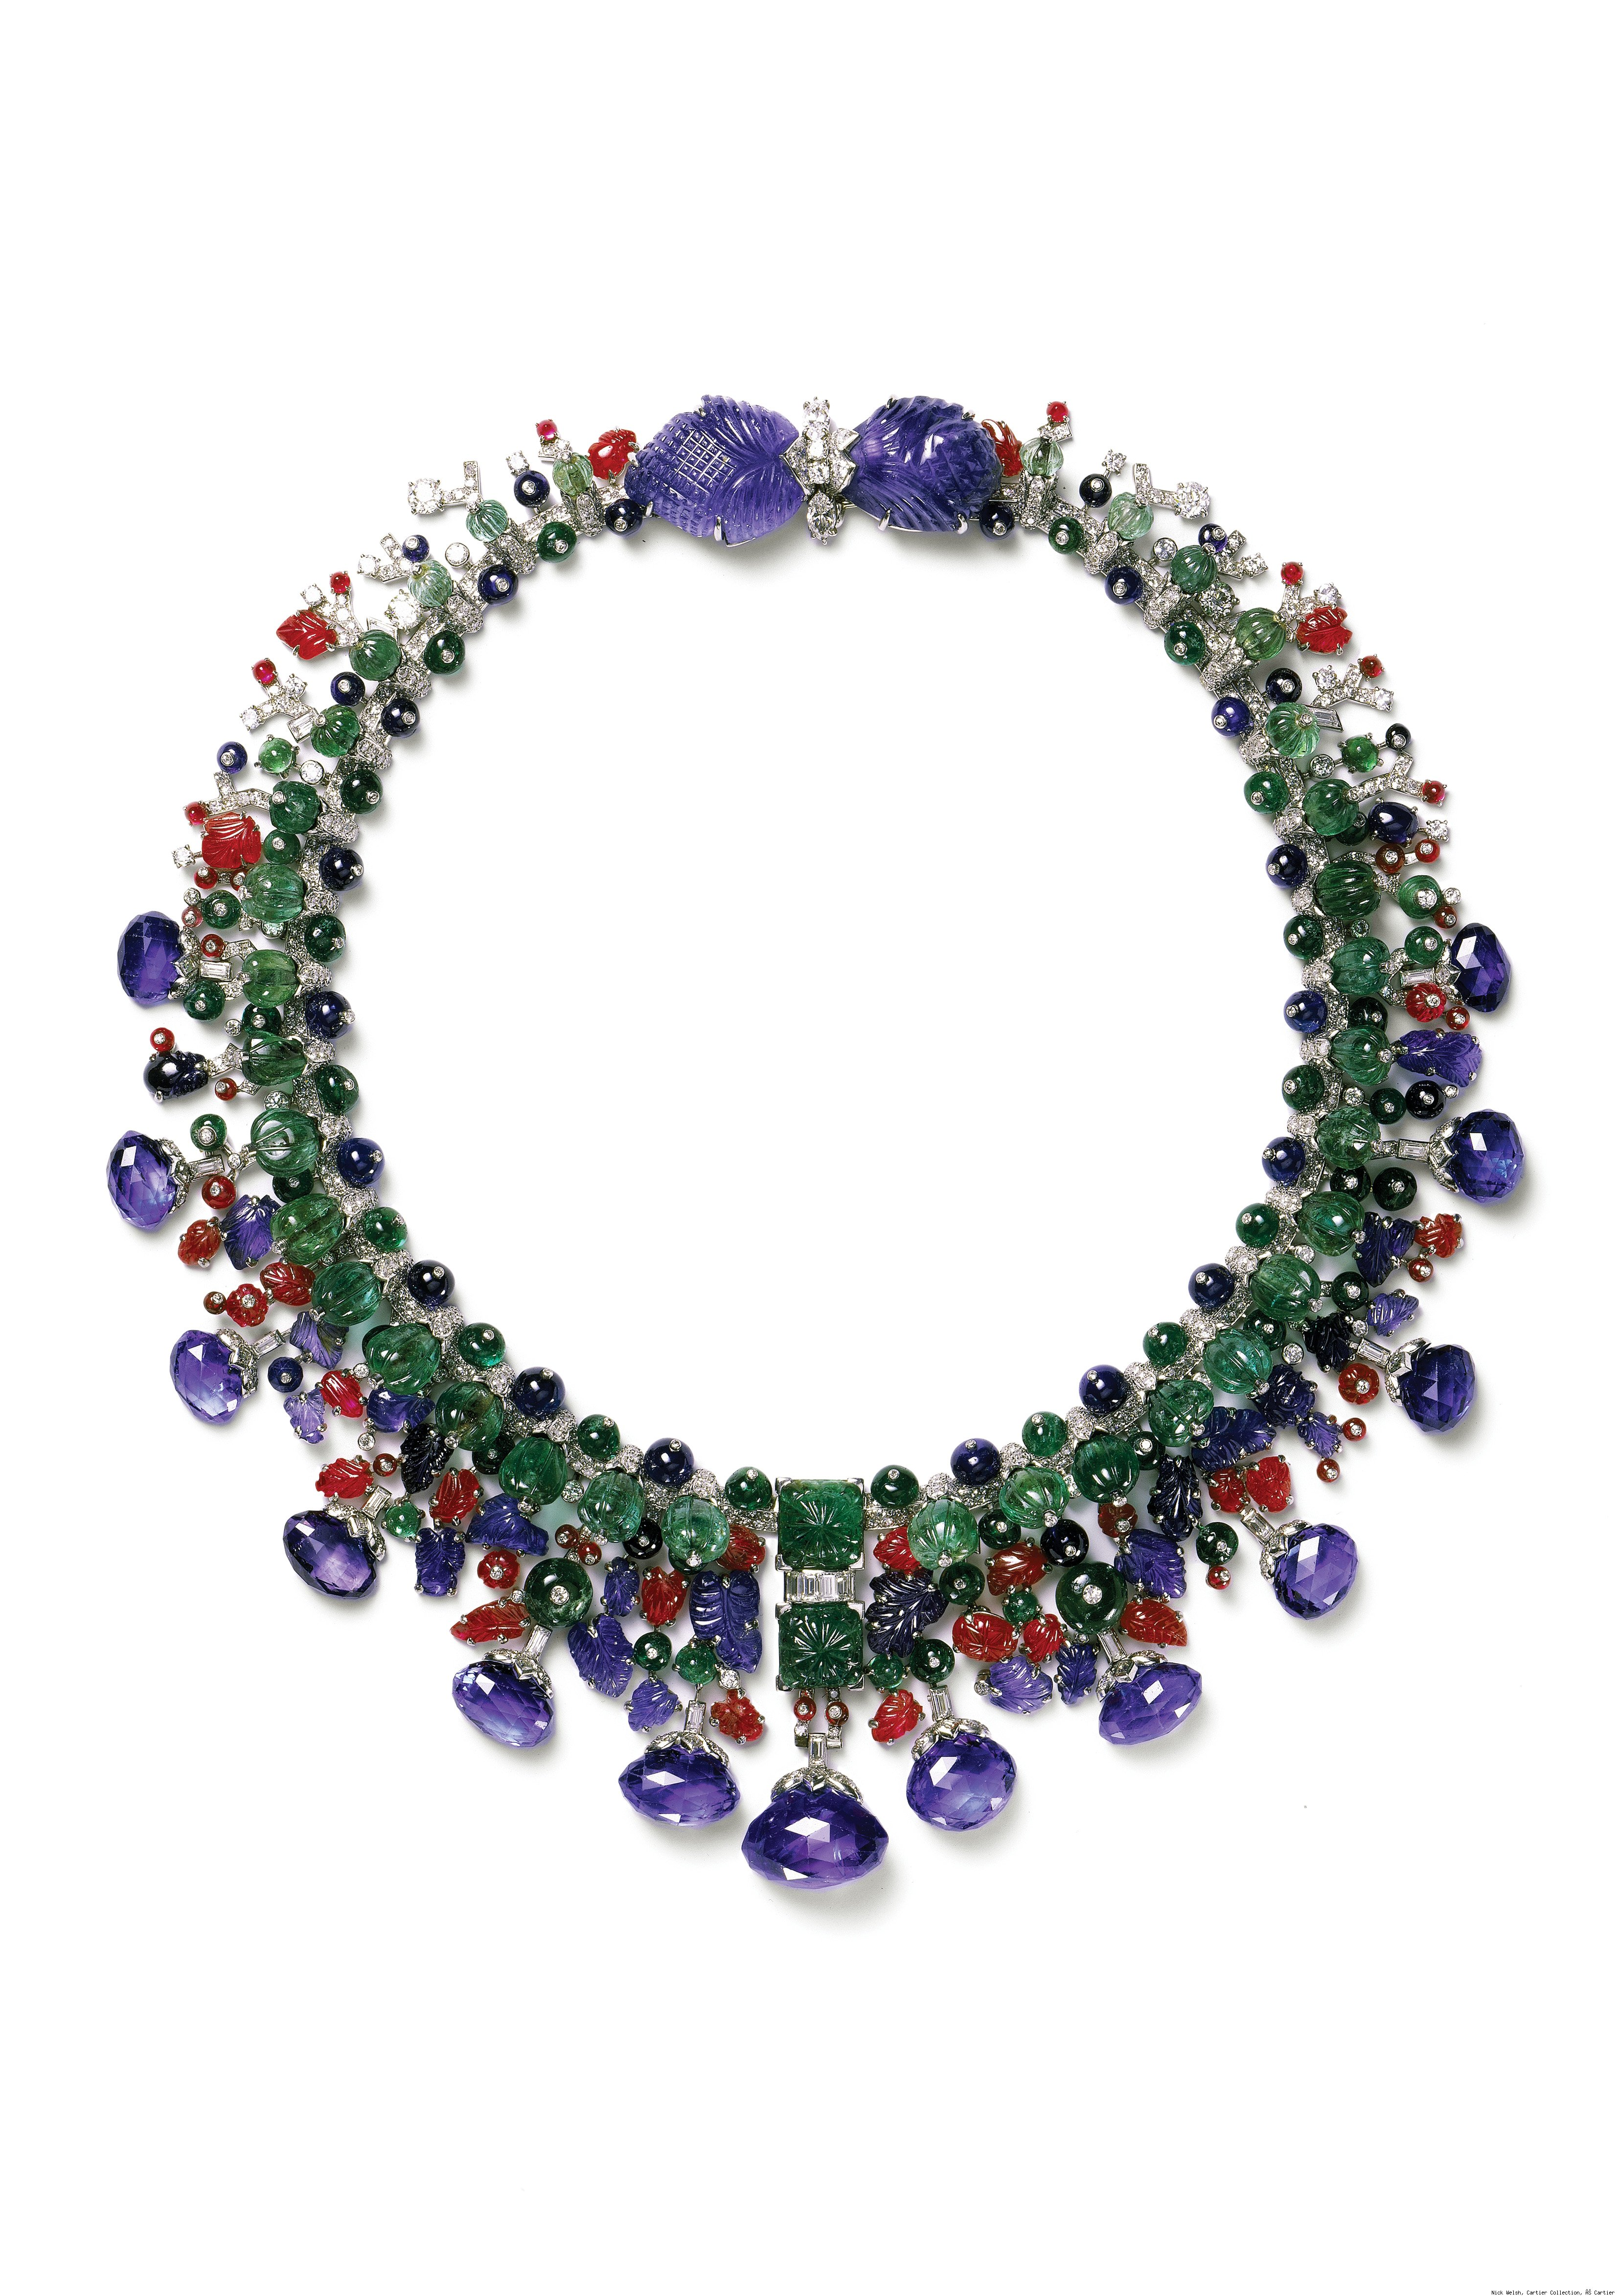 The Tutti Frutti Necklace by Cartier